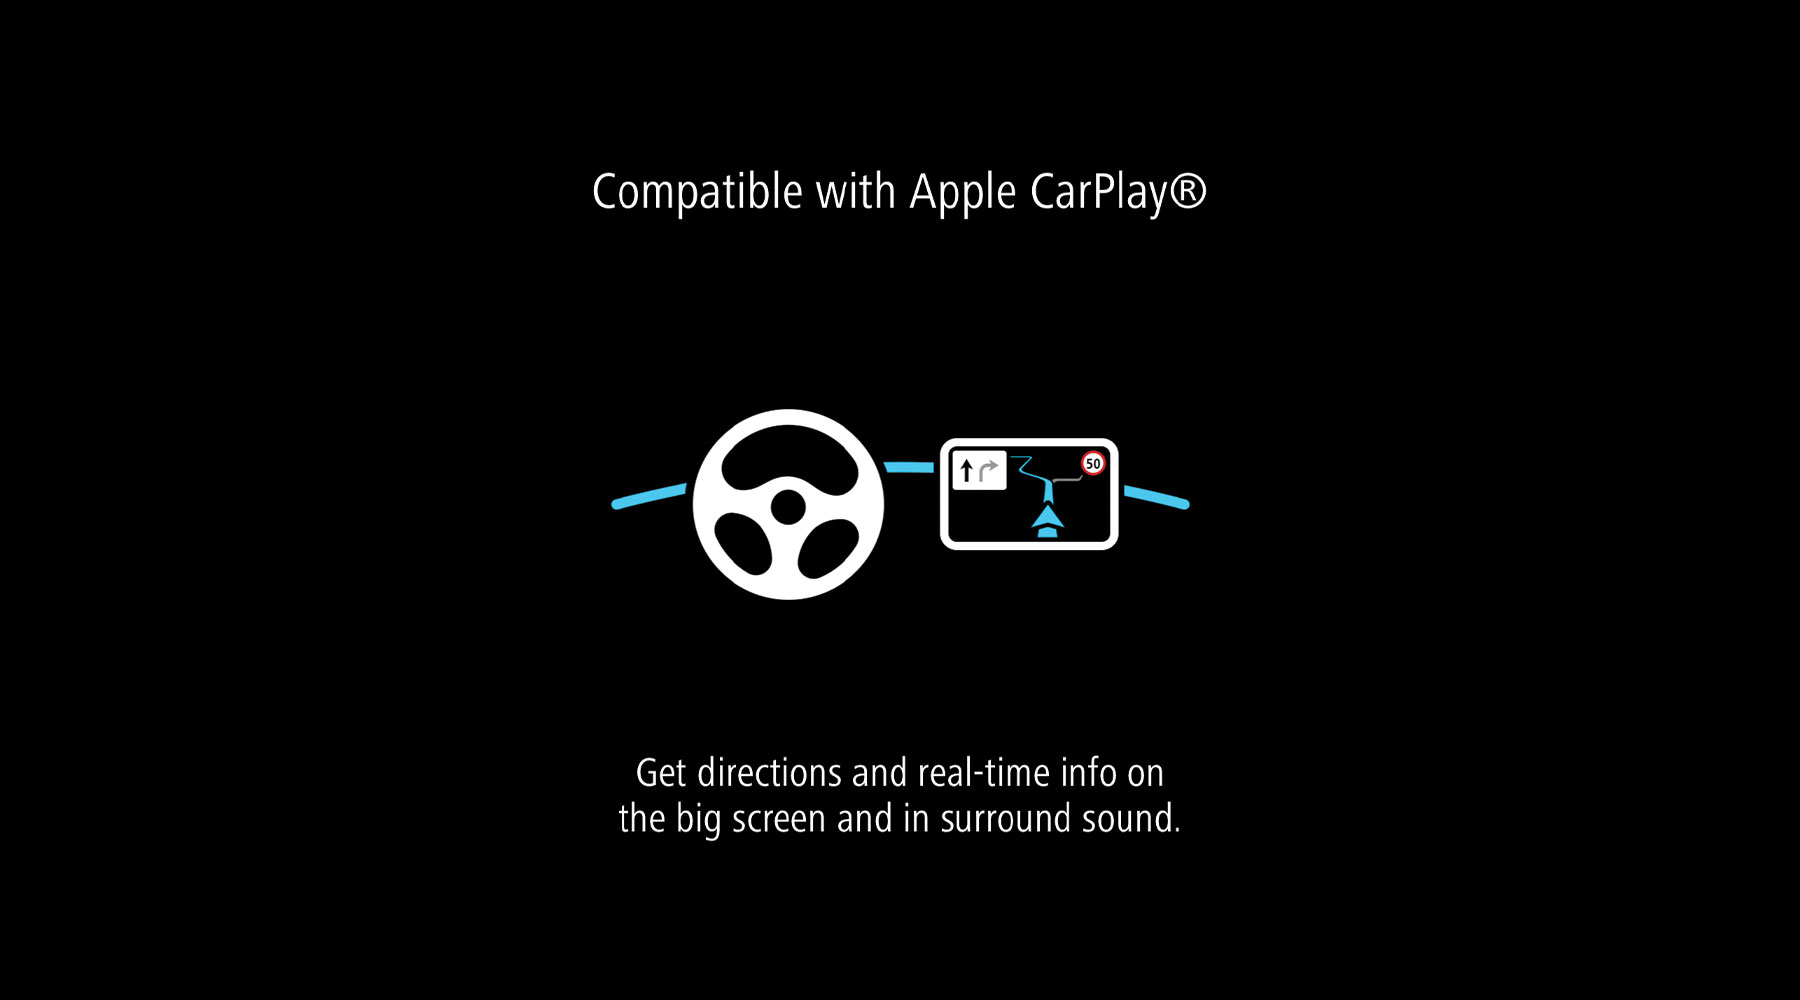 TomTom Adds Apple CarPlay Support - Connected Car Life